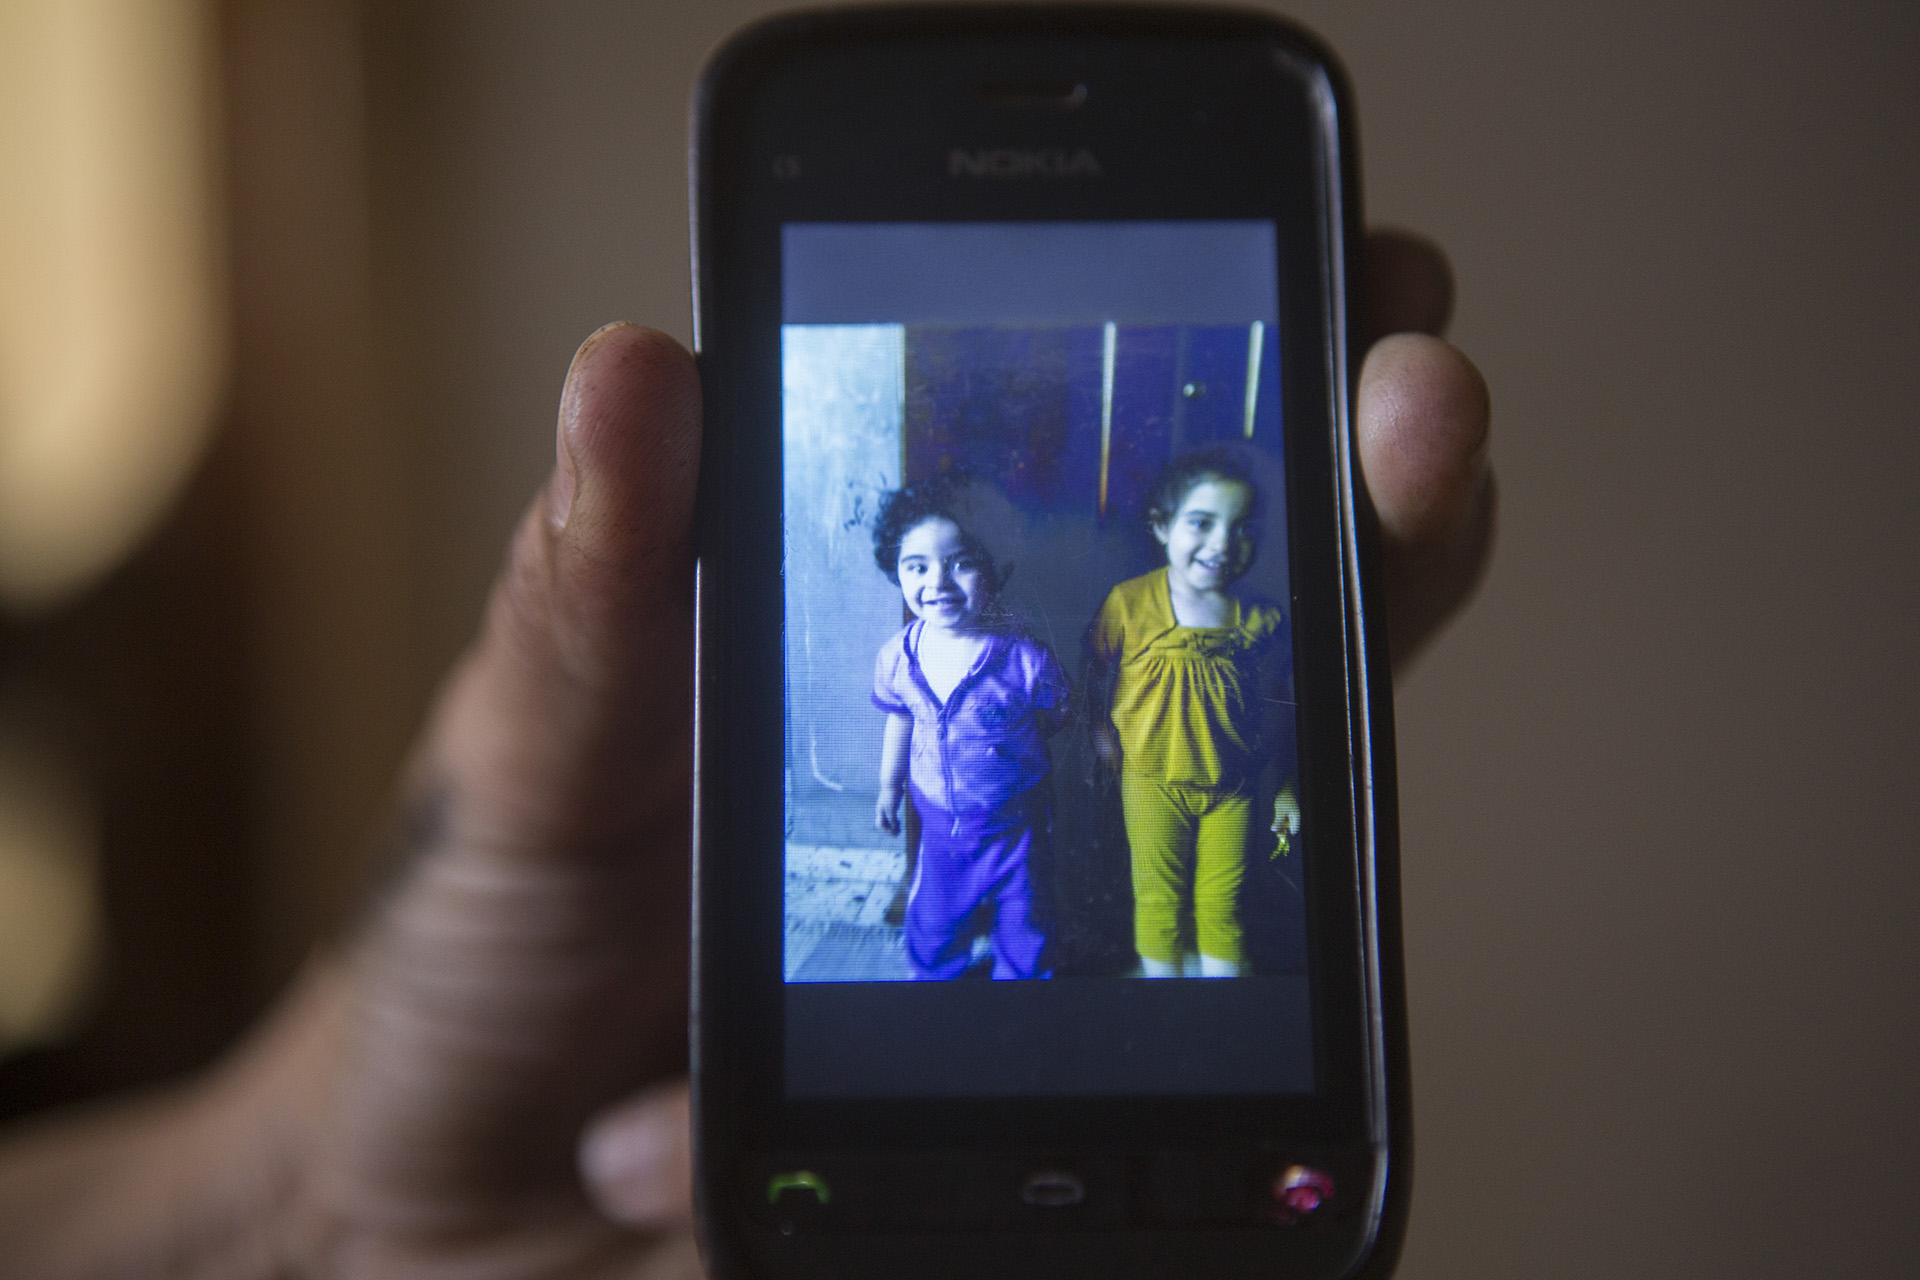 Photos of Hala and Jana, Mohammed's nieces, killed together with their parents in the Israeli airstrike on the Maadi house.